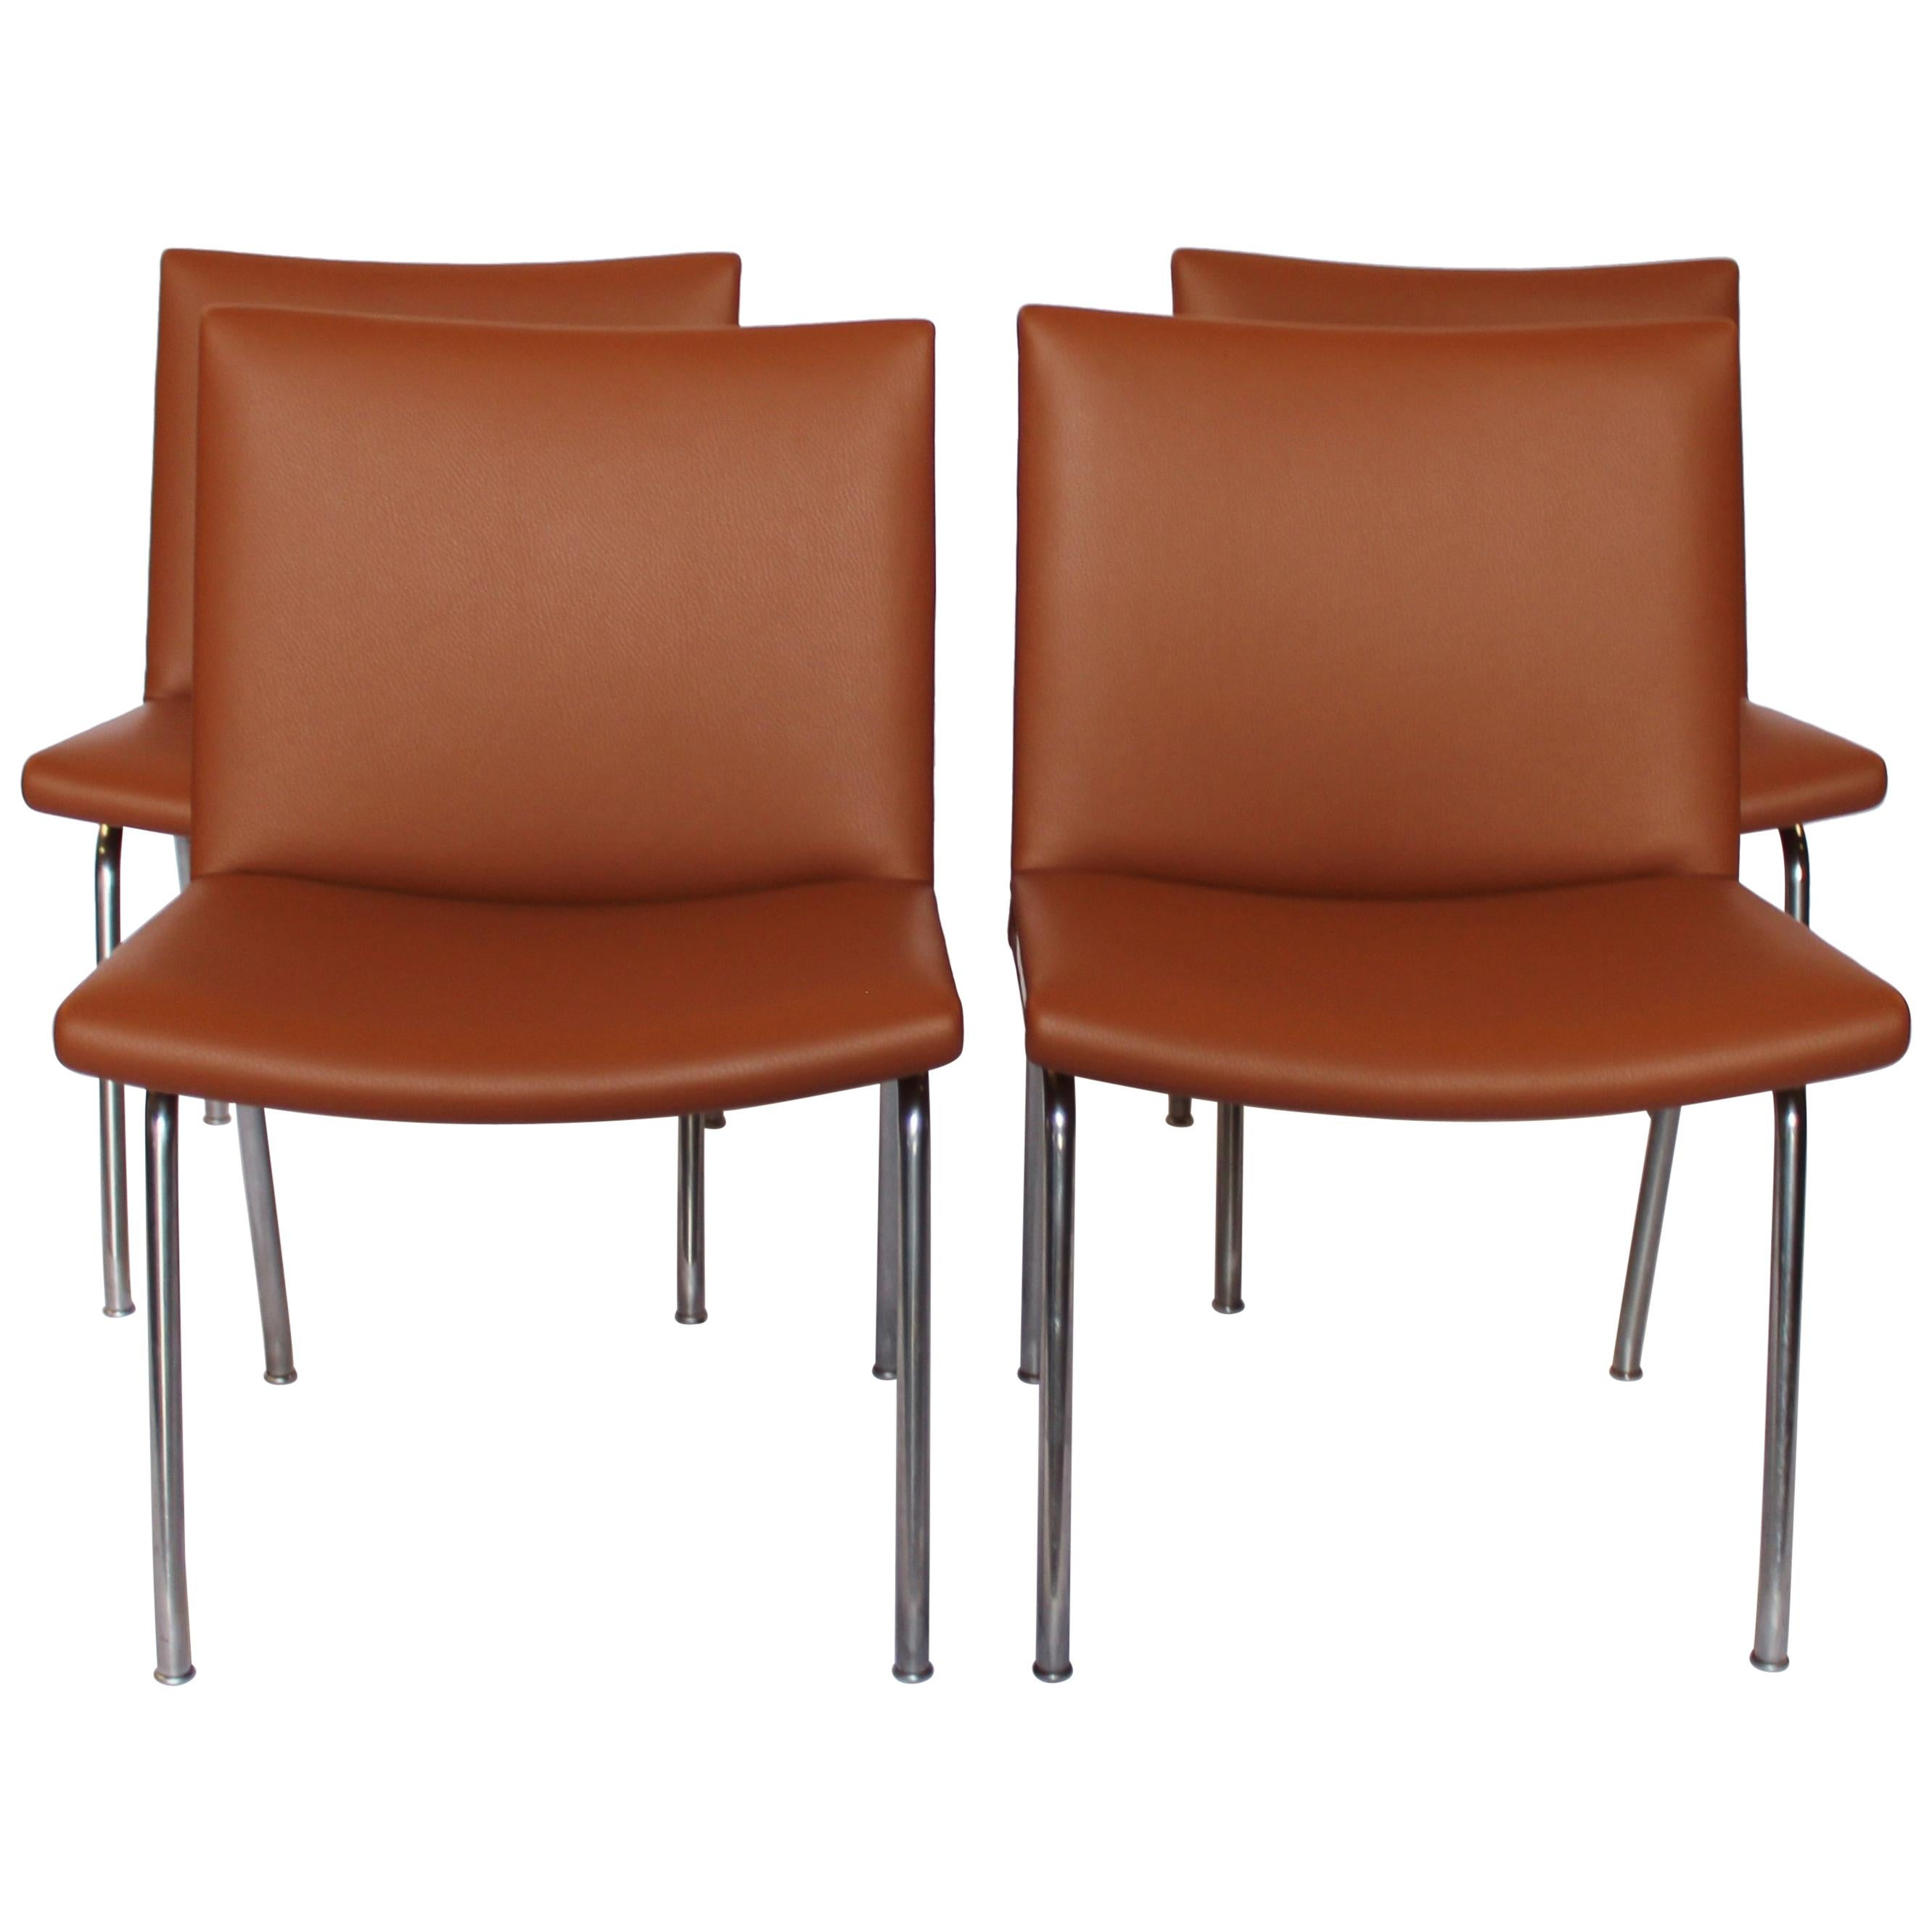 """Set of Four """"Airport-Chairs"""", Model AP37, by Hans J. Wegner and AP Stolen, 1950s"""